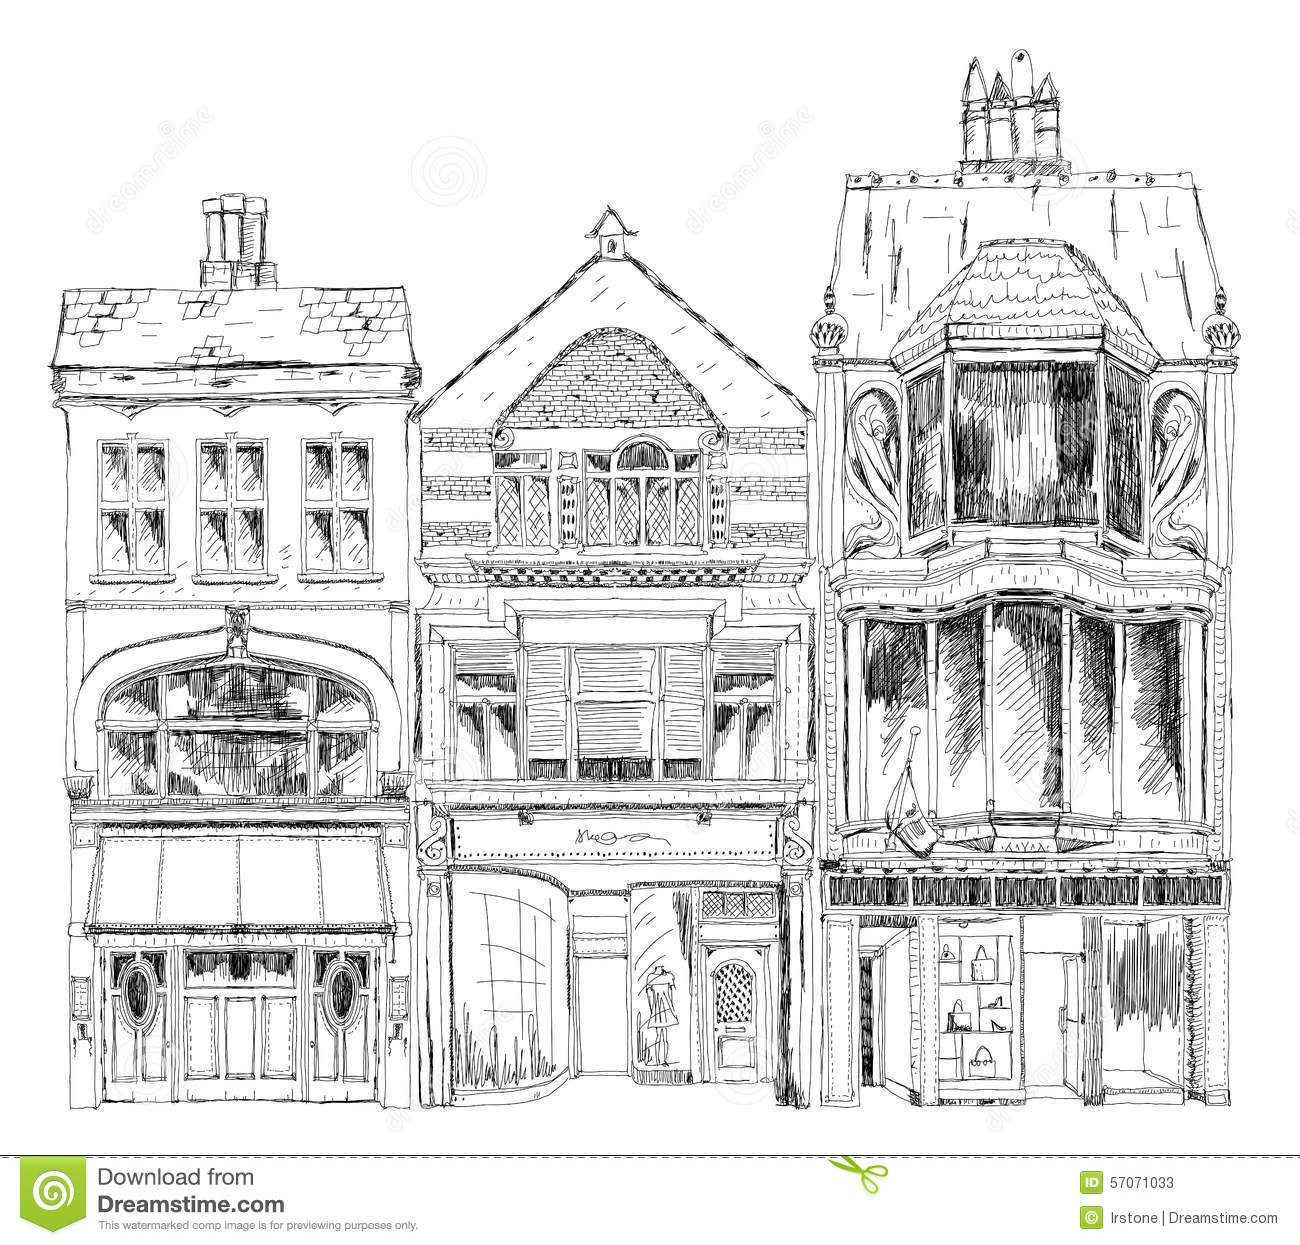 Old English Town Houses With Small Shops Or Business On